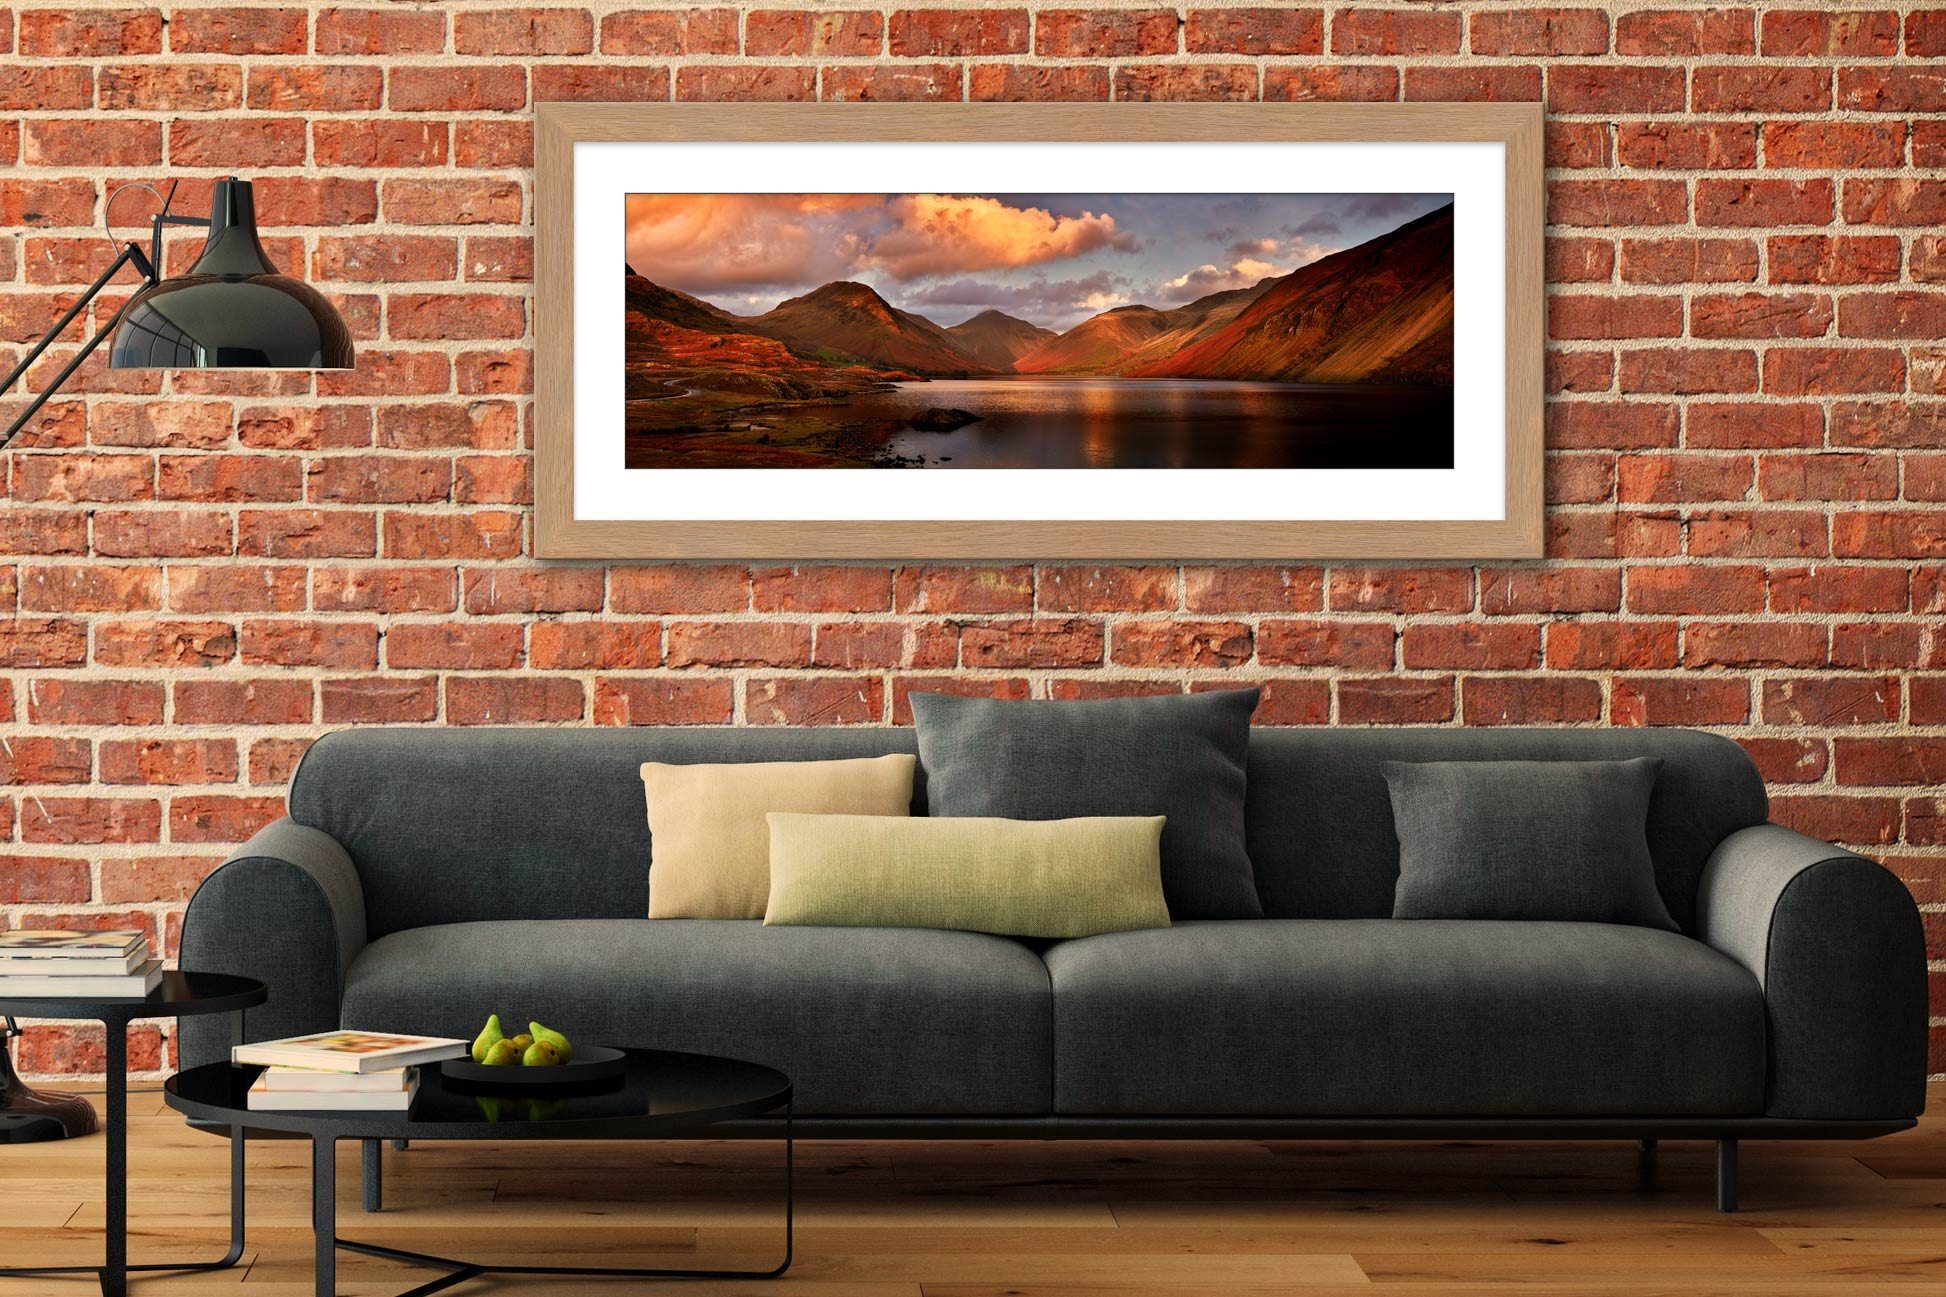 Dusk at Wast Water - Framed Print with Mount on Wall